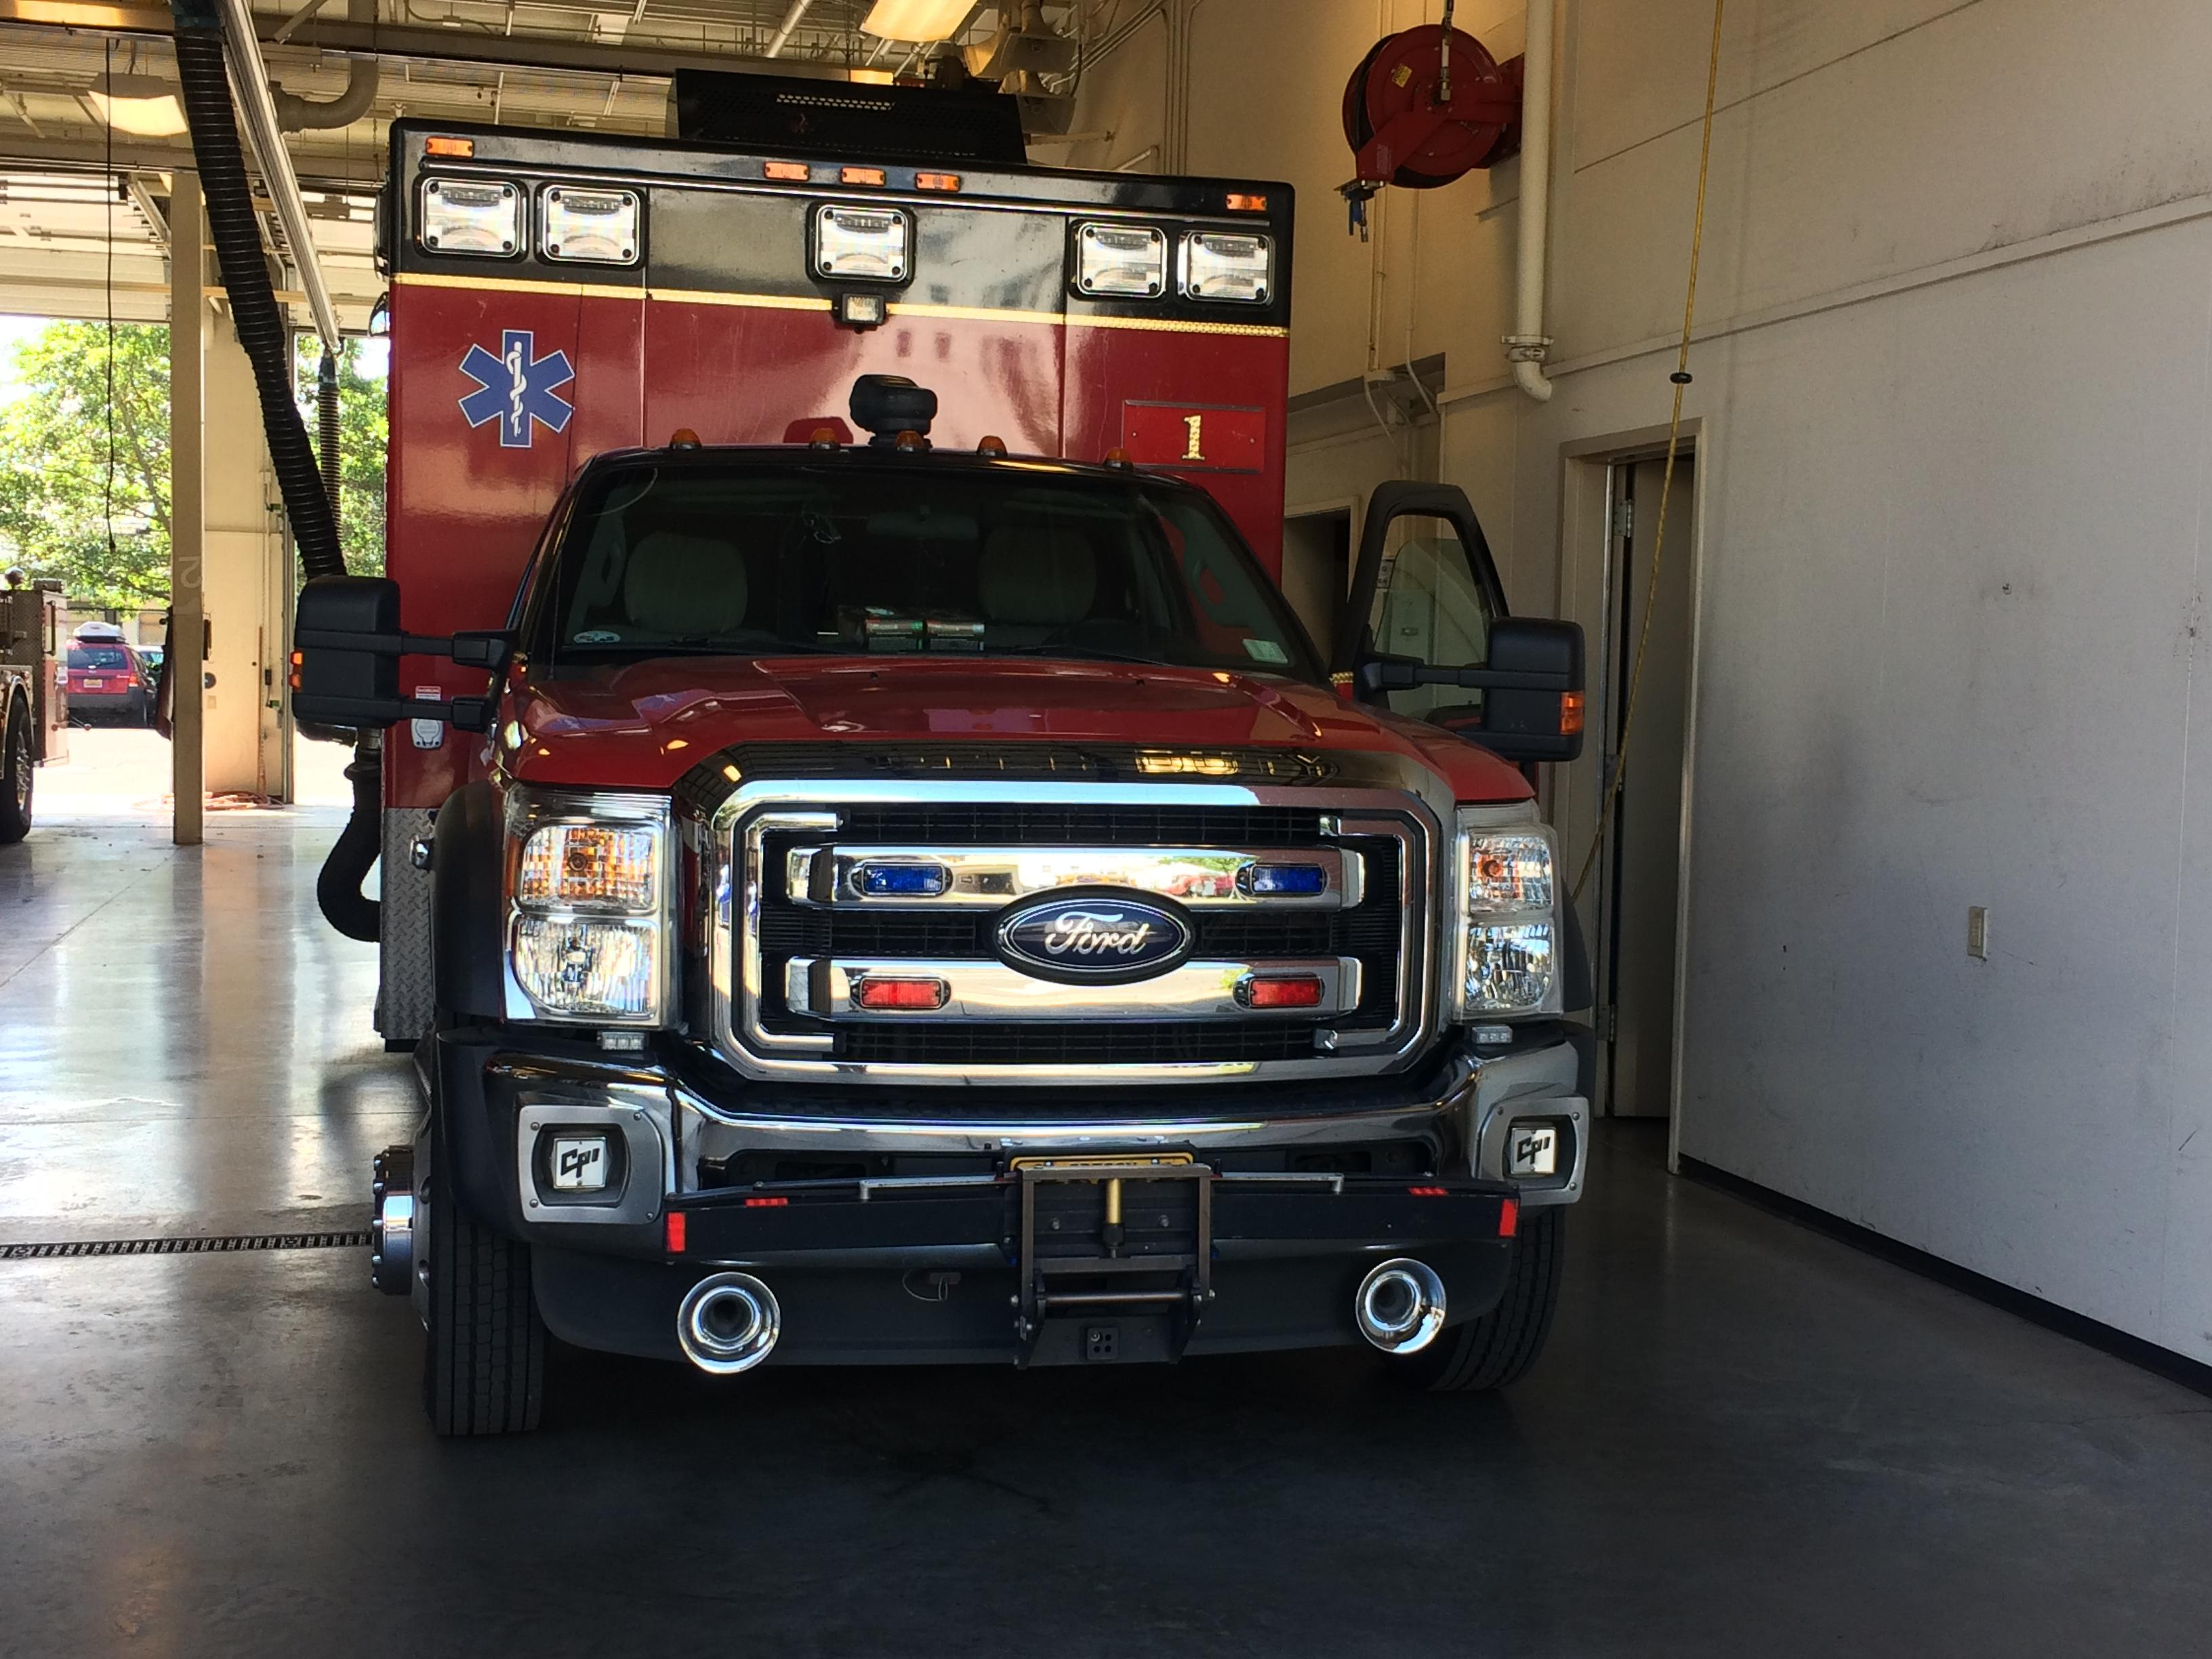 2018 ford ambulance. interesting 2018 eugene city council voted to provide funding for two additional ambulances  in 2018 the vote and 2018 ford ambulance l